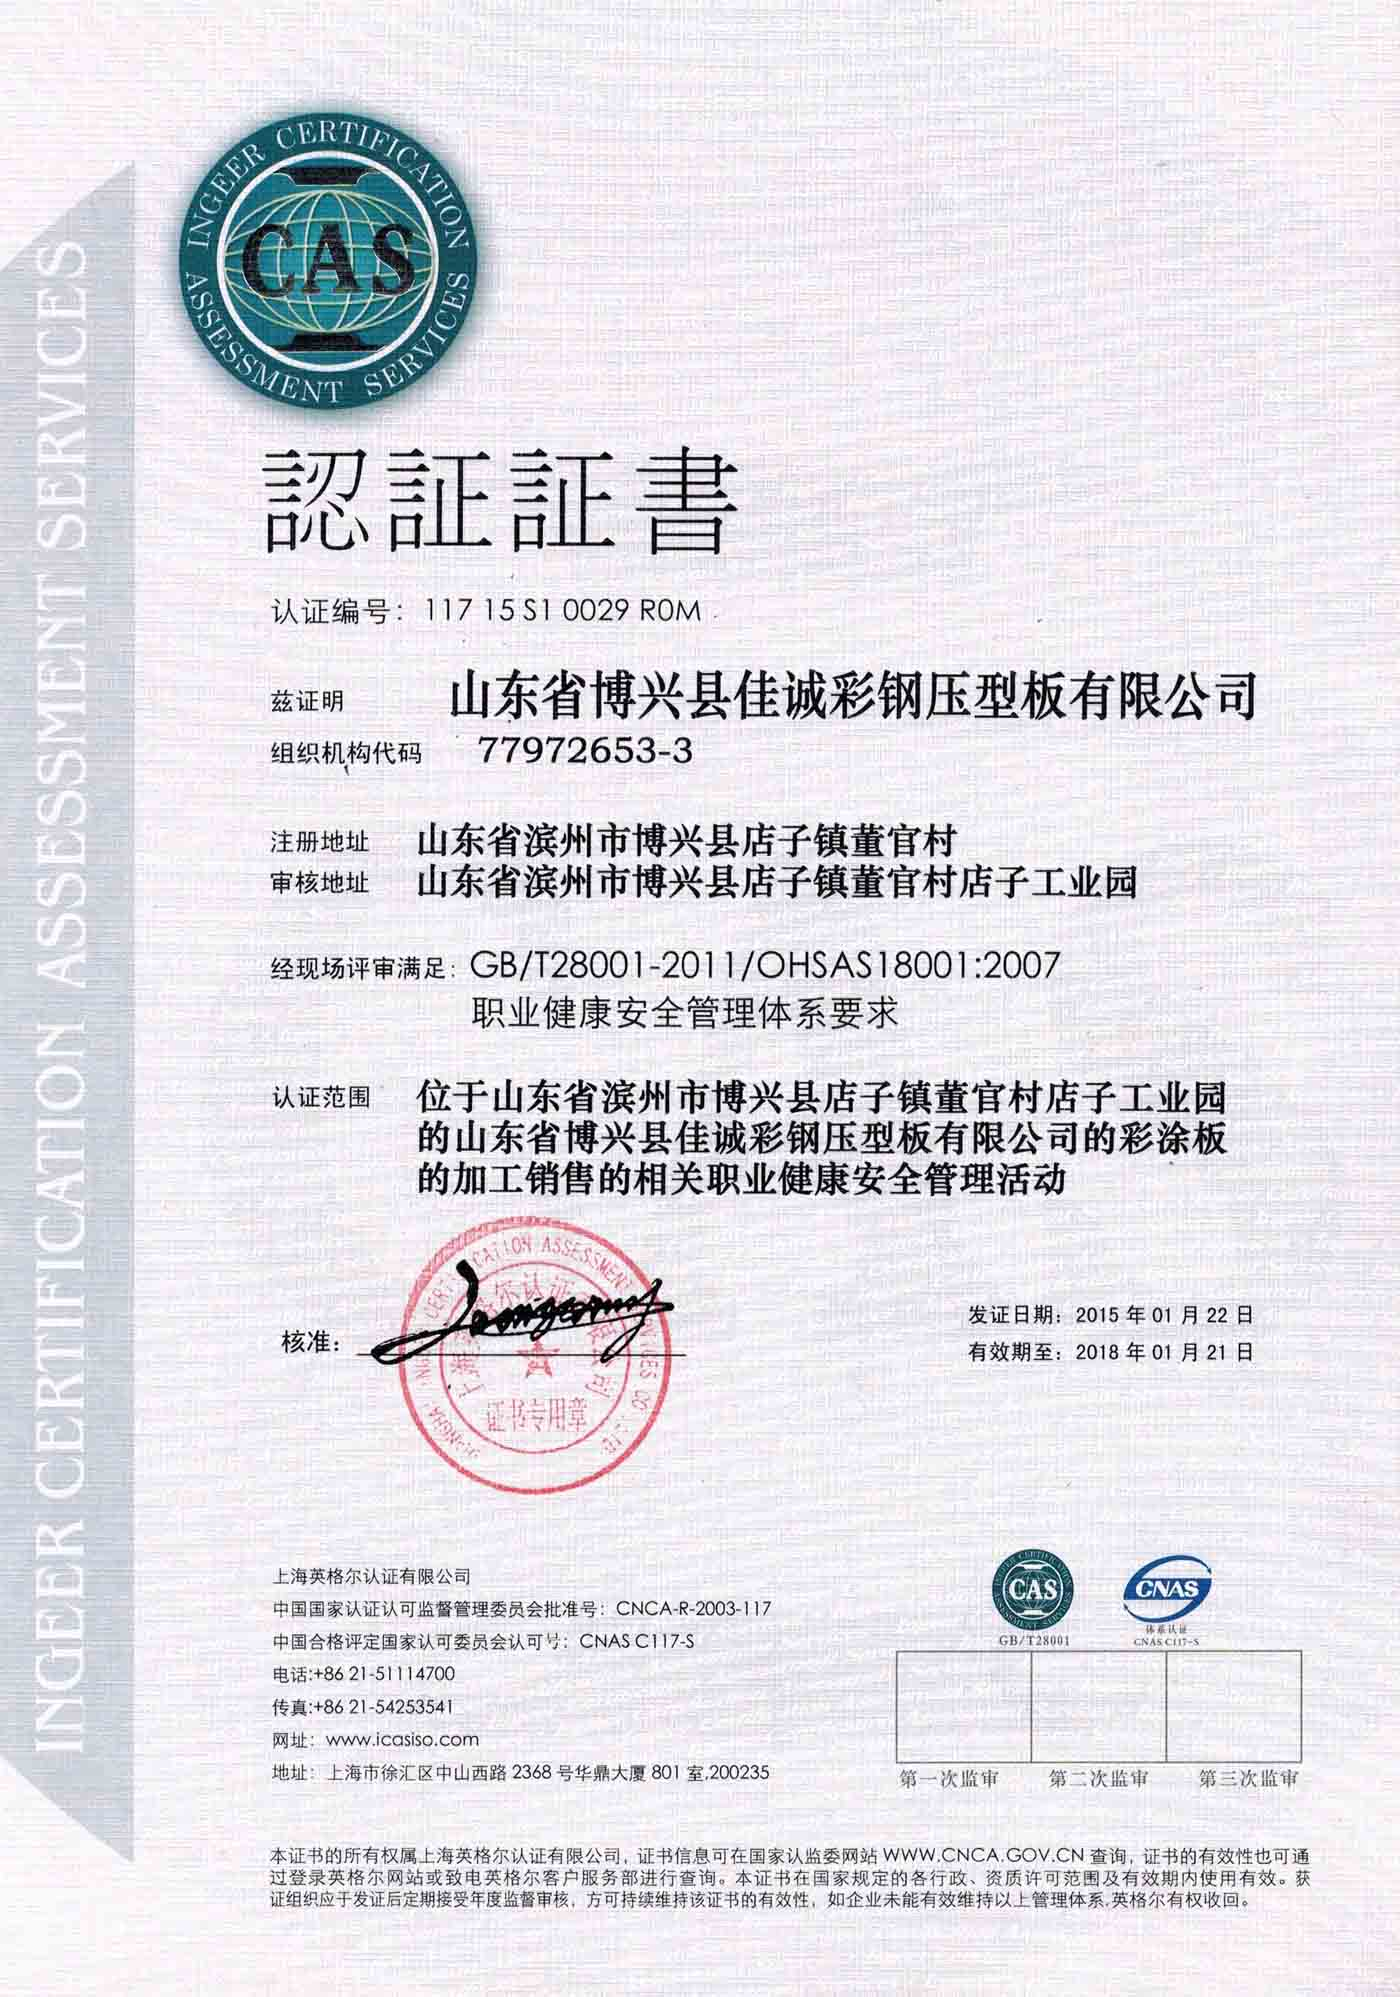 CAS Certificate of Registration OHSAS18001 (Chinese Version)